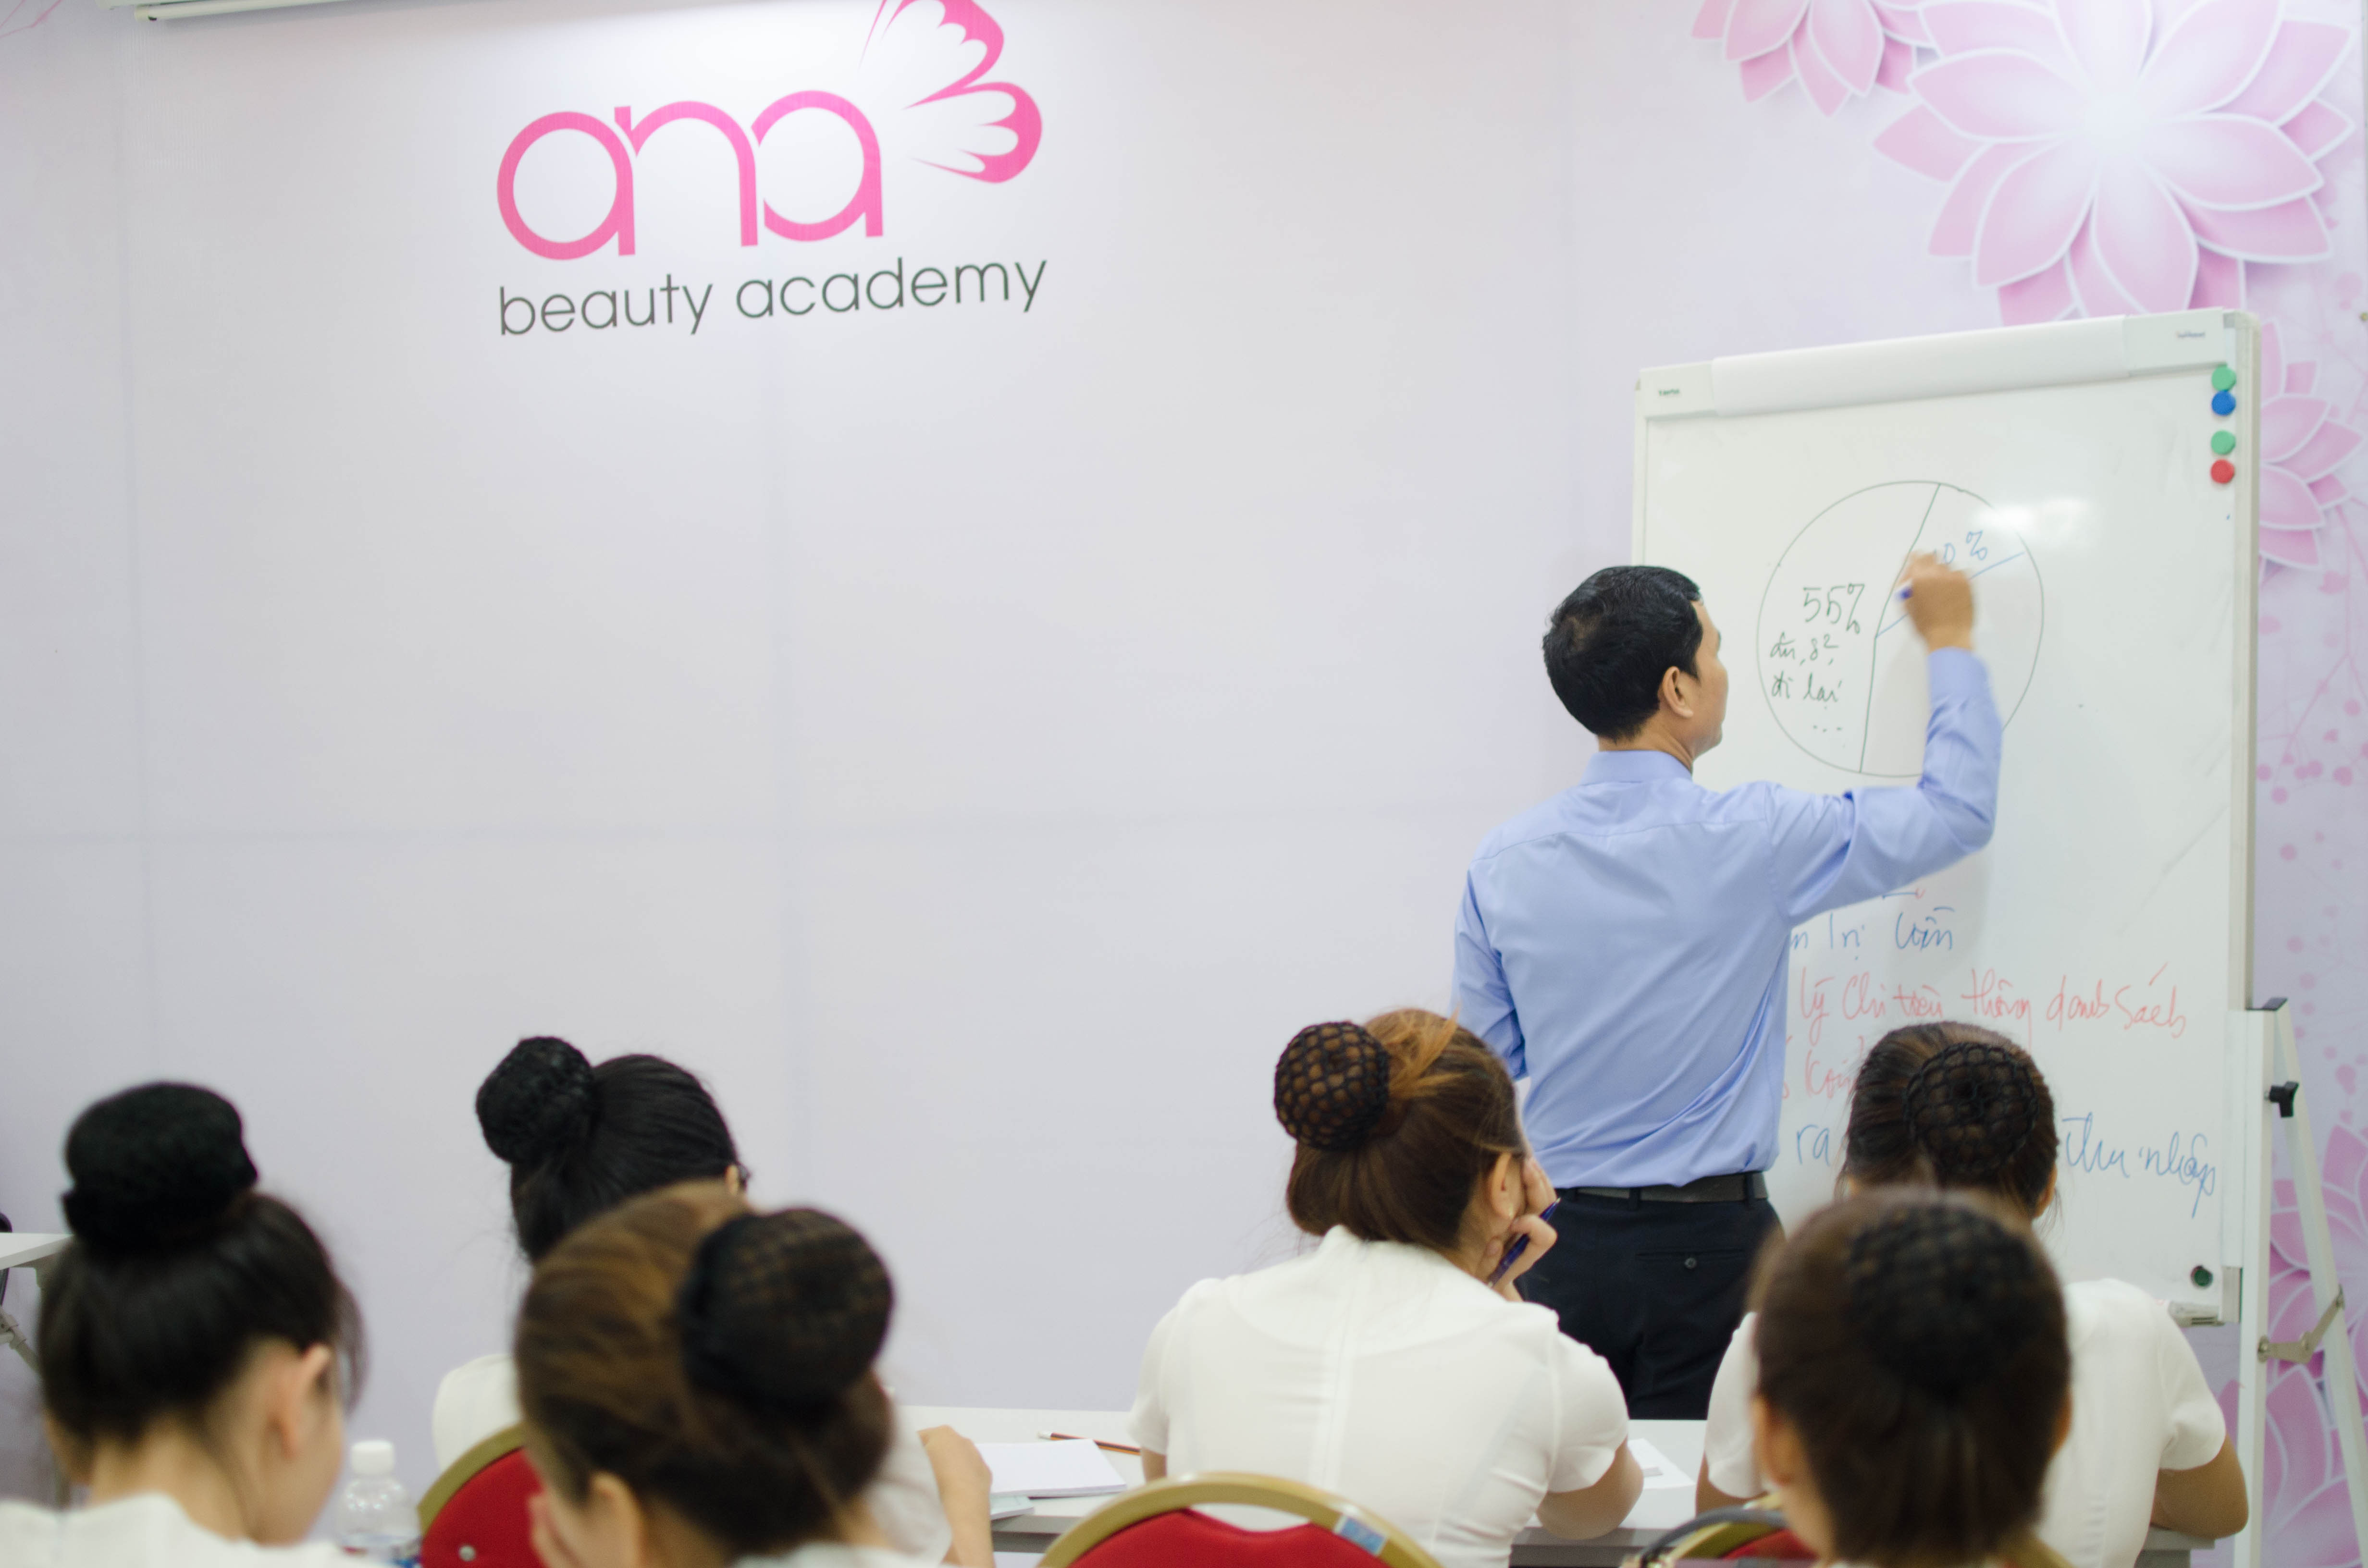 Ana-beauty-academy